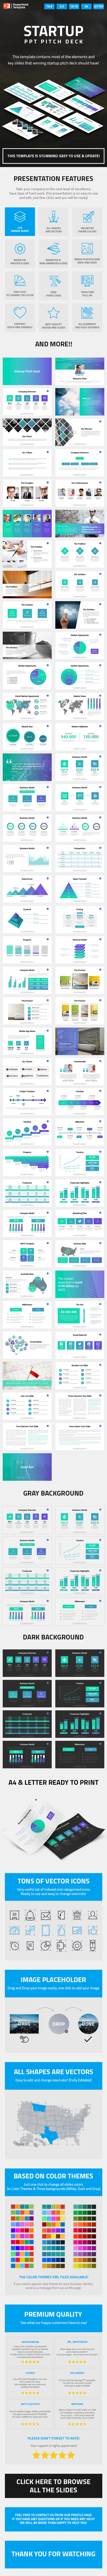 Startup Business PPT Pitch Deck - Business PowerPoint Templates